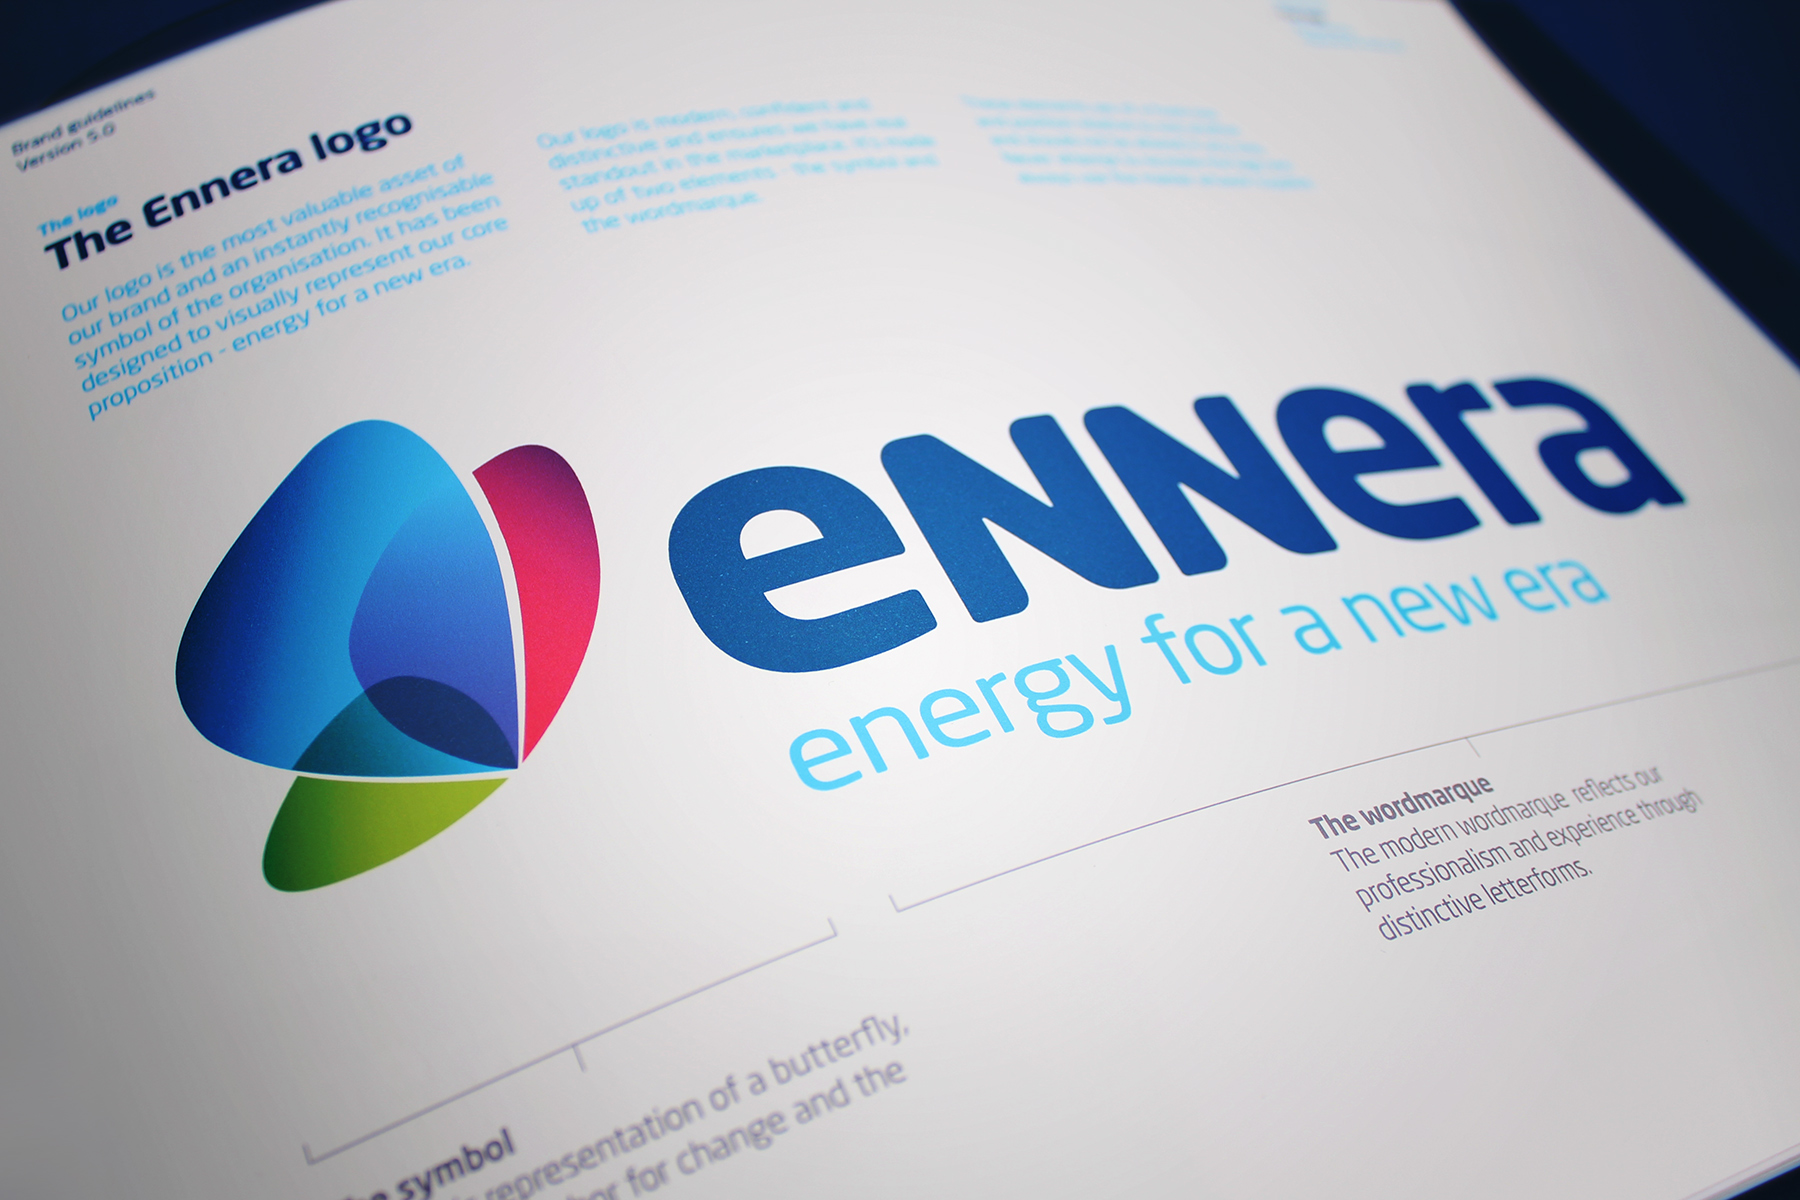 The Ennera brand mark represents a perfect balance between both an approachable and established feel.